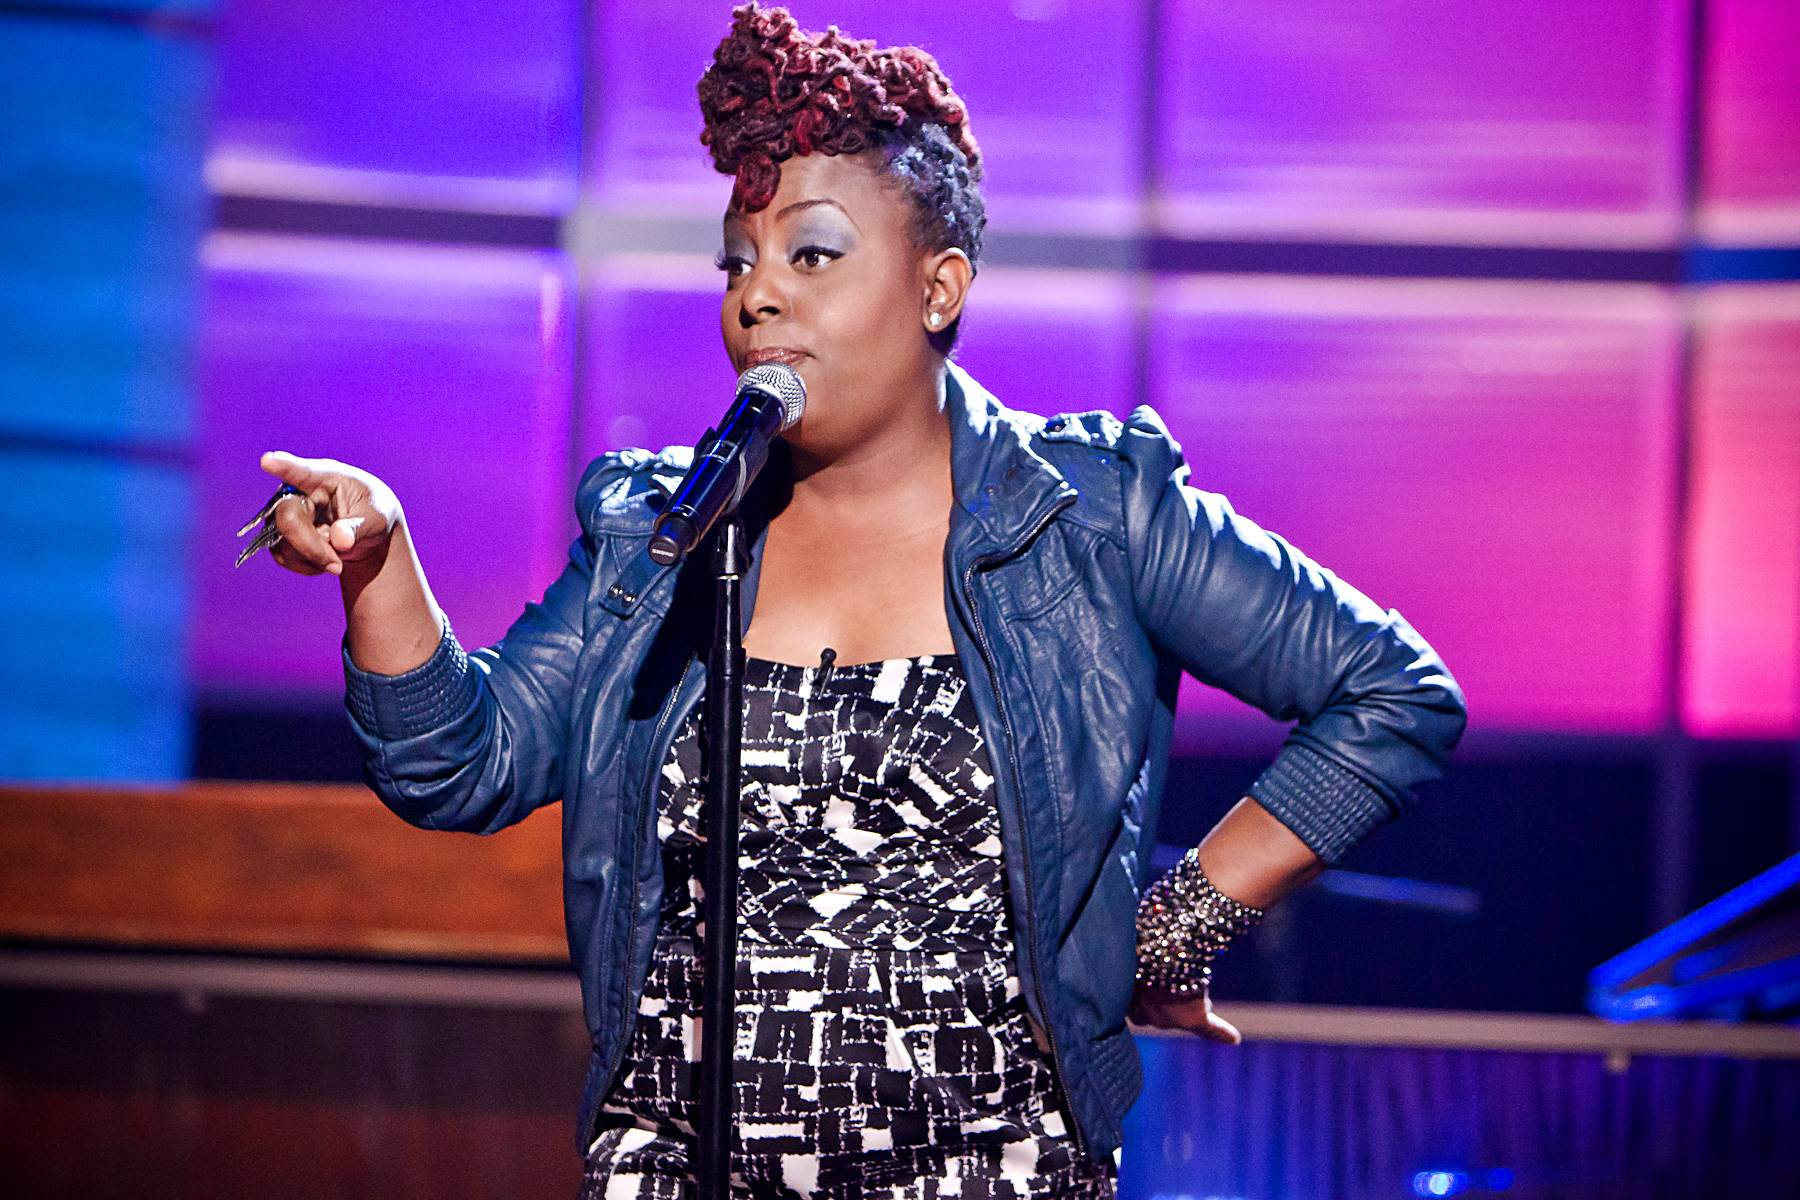 Fifth Time's the Charm - Pieces of Me is Ledisi's fifth album and was released June 14th, 2011.(Photo: Darnell Williams/BET)